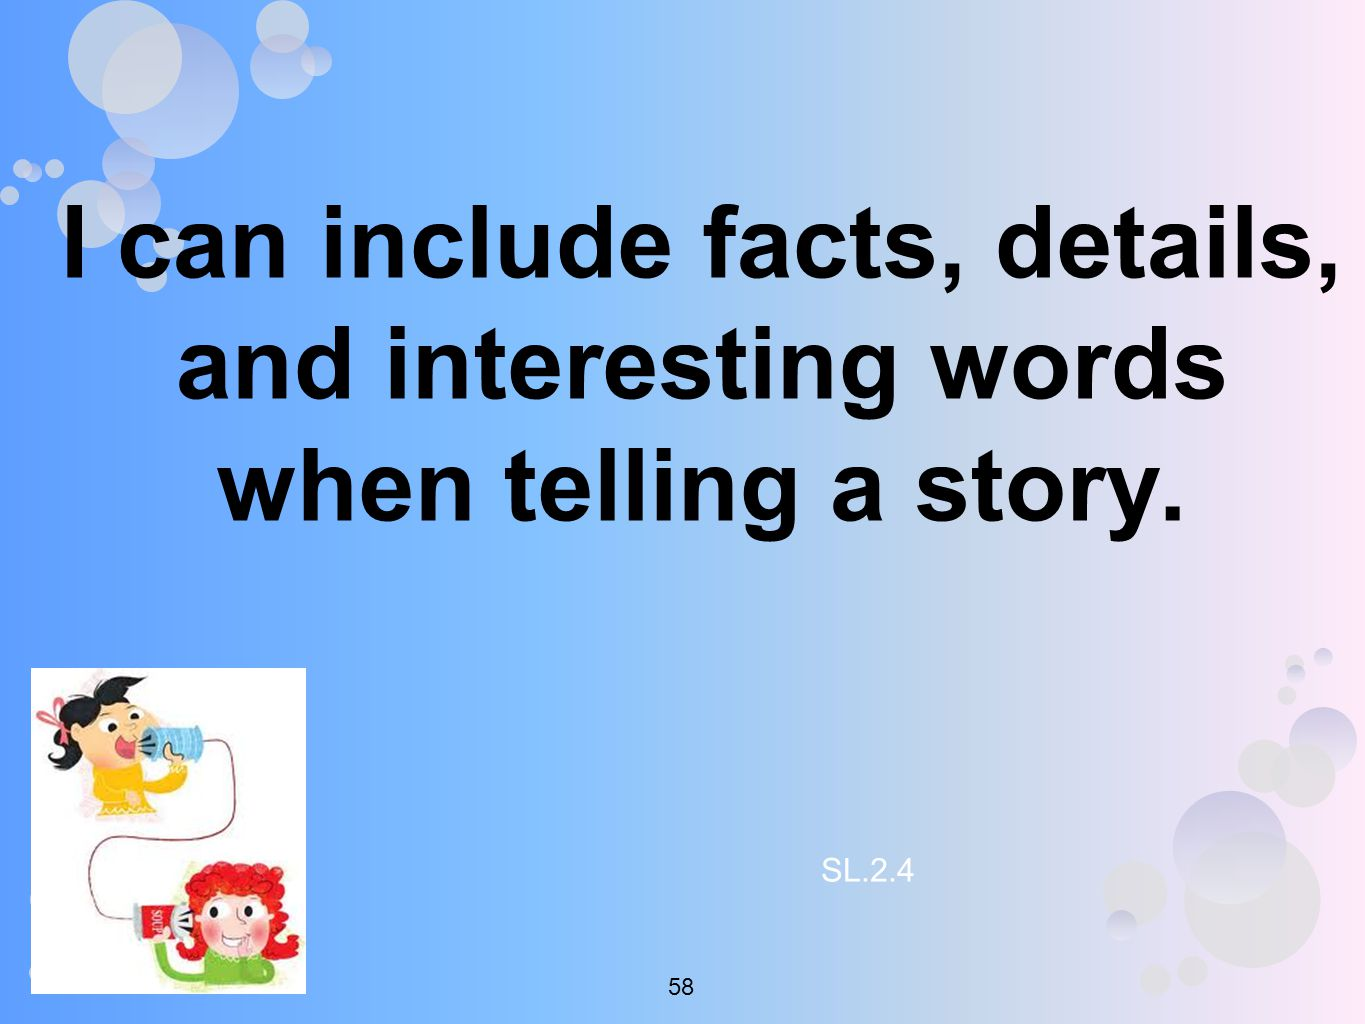 I can include facts, details, and interesting words when telling a story. SL